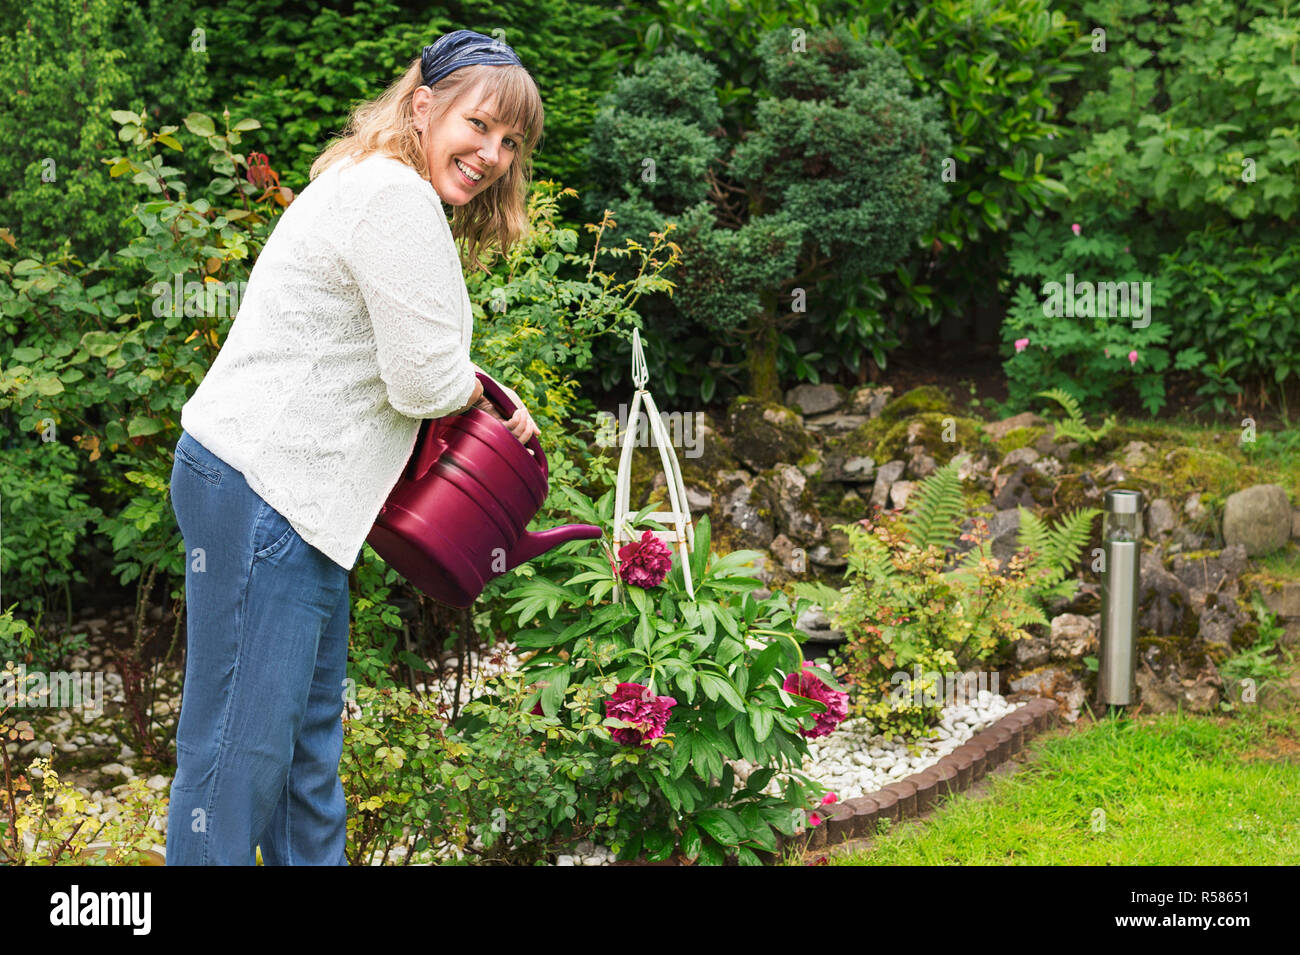 friendly woman is pouring peonies in the garden - Stock Image